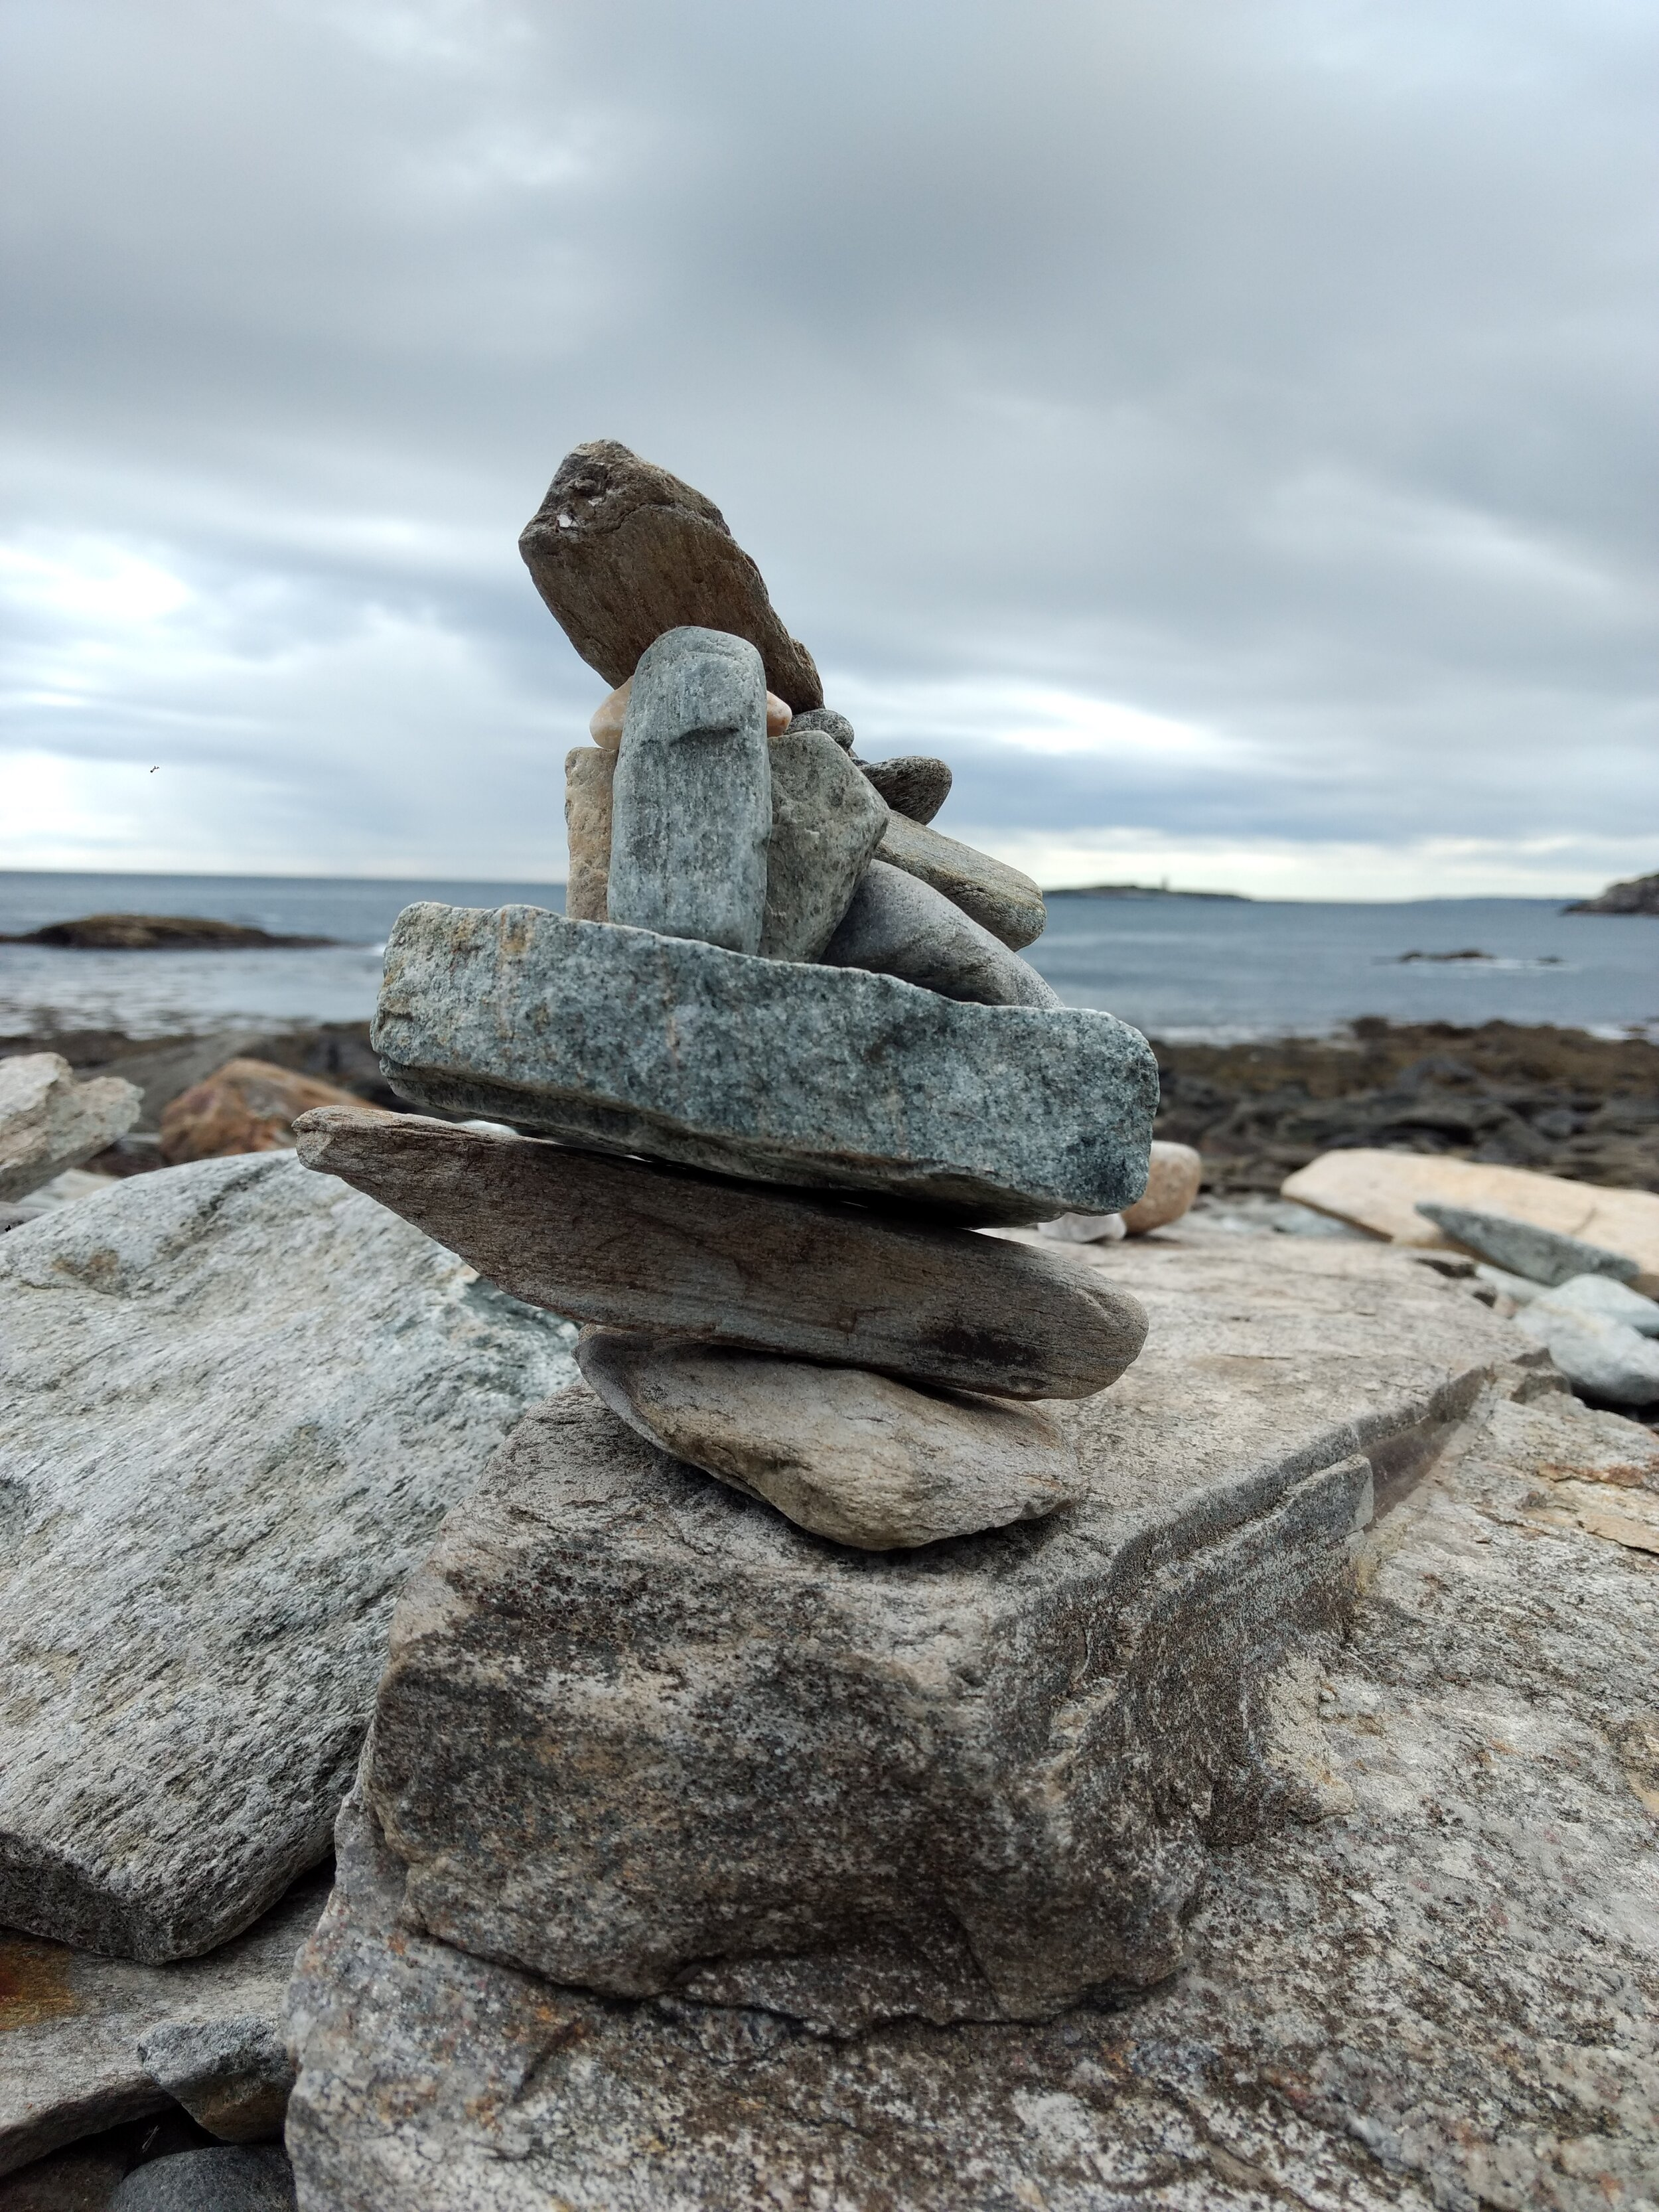 Rock cairn (my mom's local friend told us these are actually bad for the beaches - my nephews enjoyed knocking them down!)